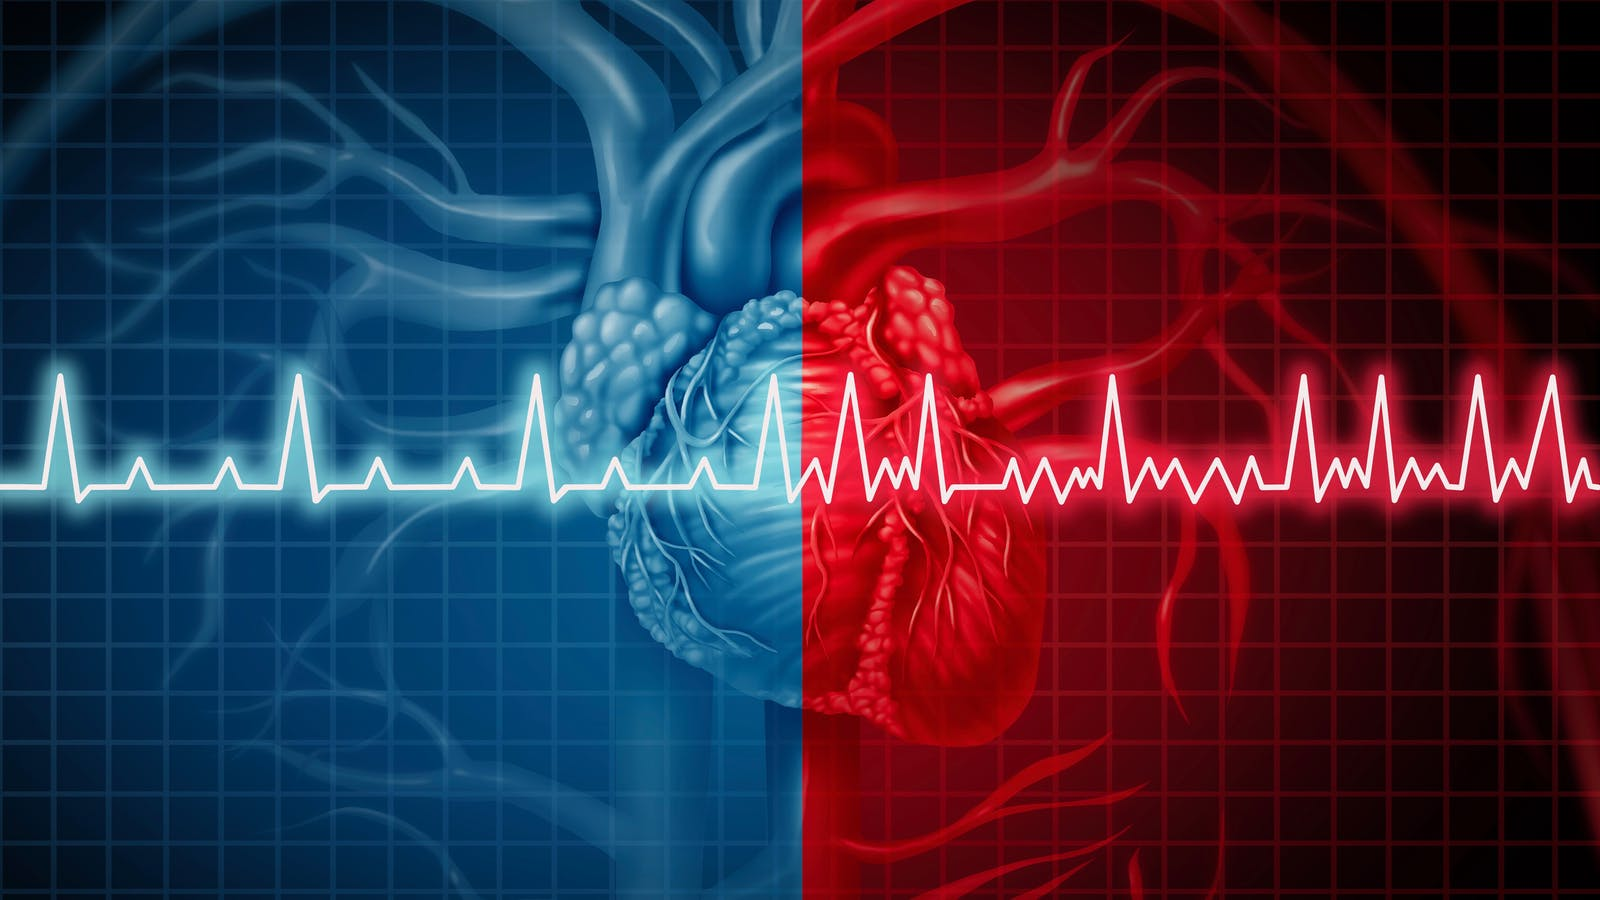 stopping keto diet and tachycardia